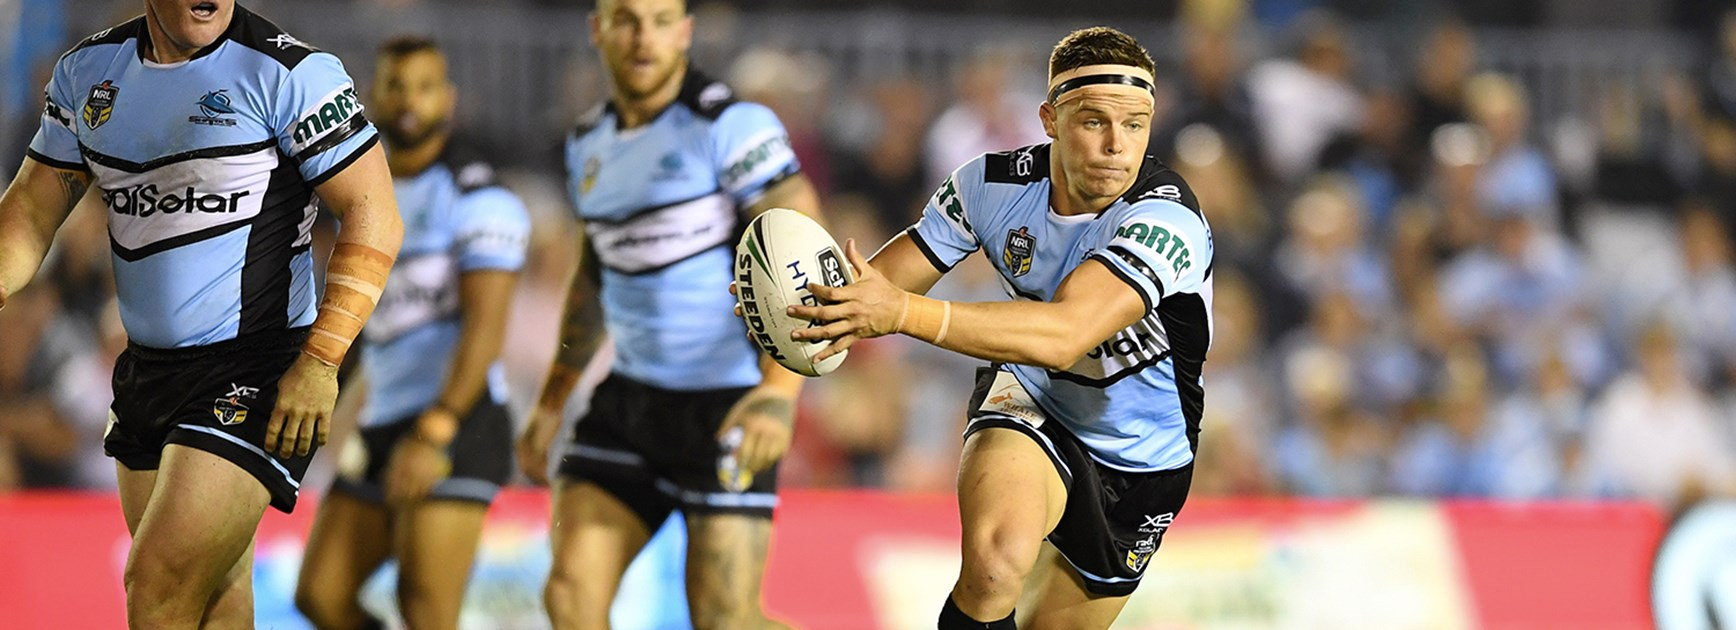 Match report: Sloppy second half sinks the Sharks